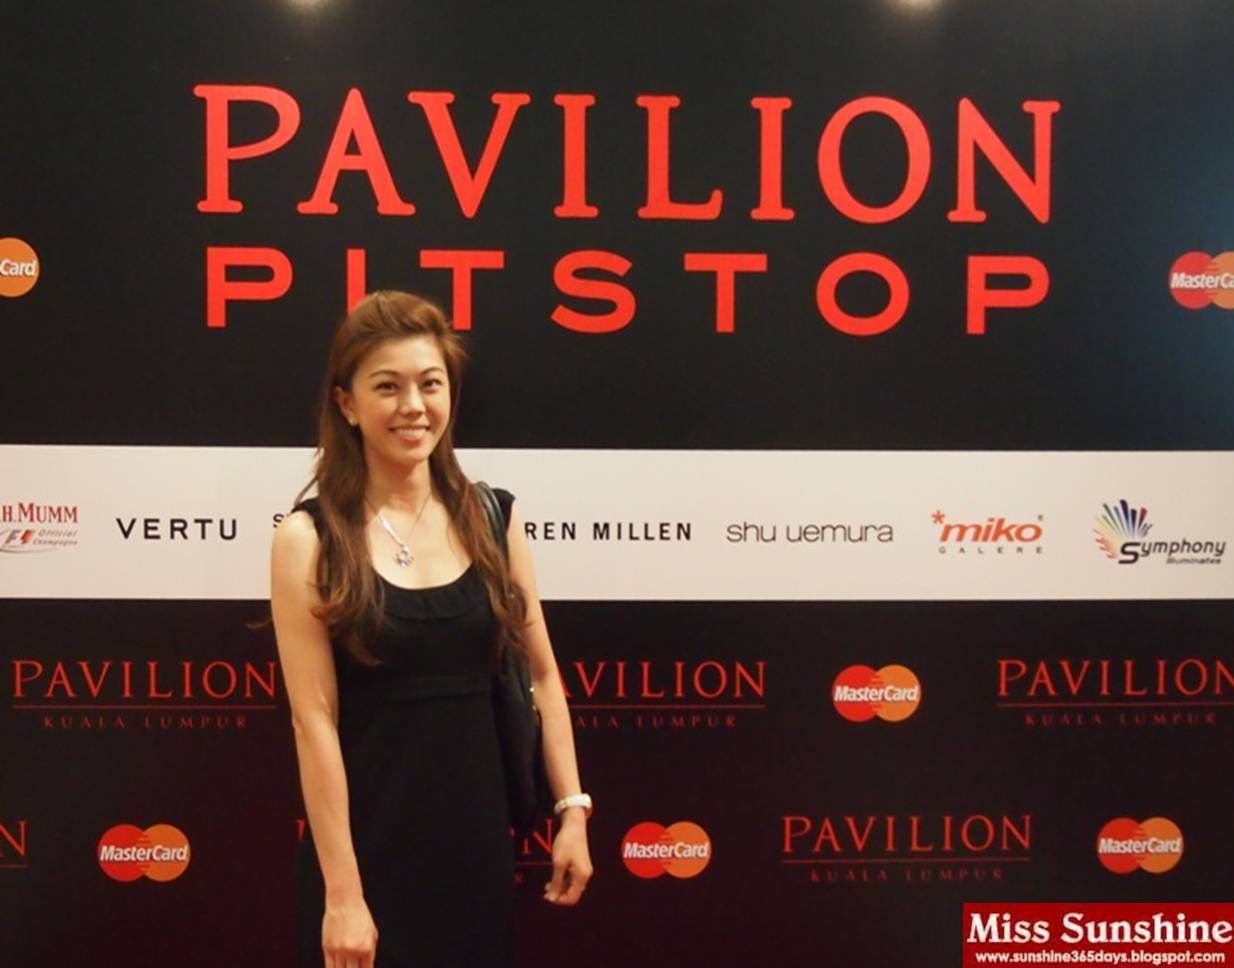 61c83cd74da 'A Glamorous Night of Fashion' was hosted by Pavilion KL and MasterCard  Worldwide in conjunction with Pavilion Pit Stop, which presents five ...